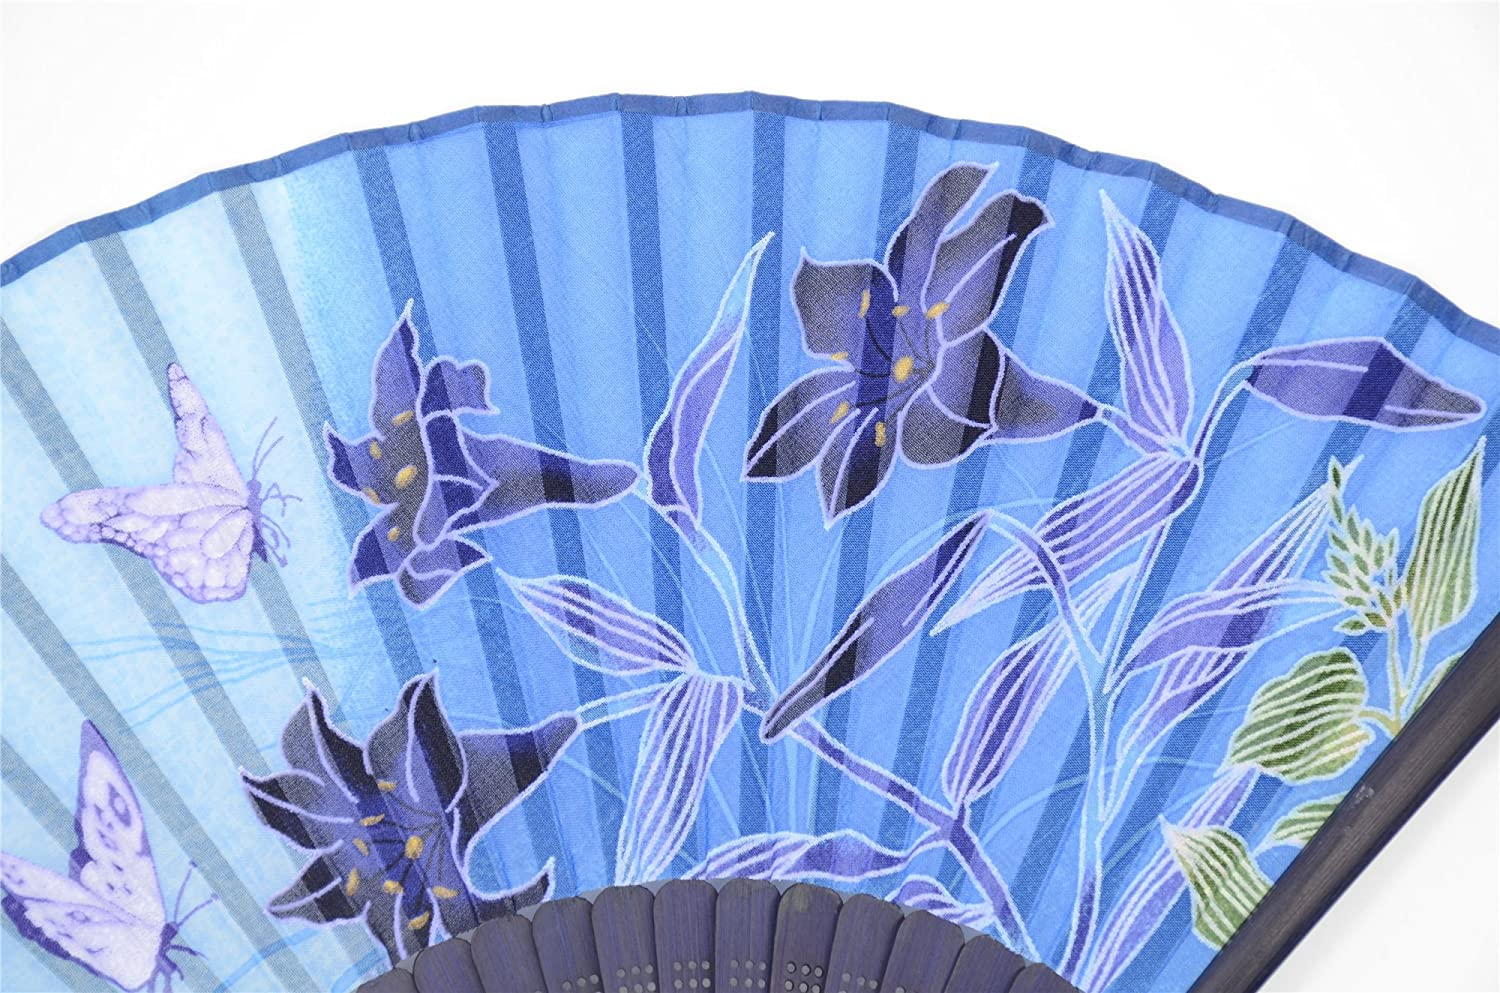 For Women Ladys Girls Fan-Laba-WZS-10 WZS-10 With a Fabric Sleeve for Protection for Gifts OMyTea Hand Held Silk Folding Fans with Bamboo Frame 100/% Handmade Oriental Chinese // Japanese Vintage Retro Style